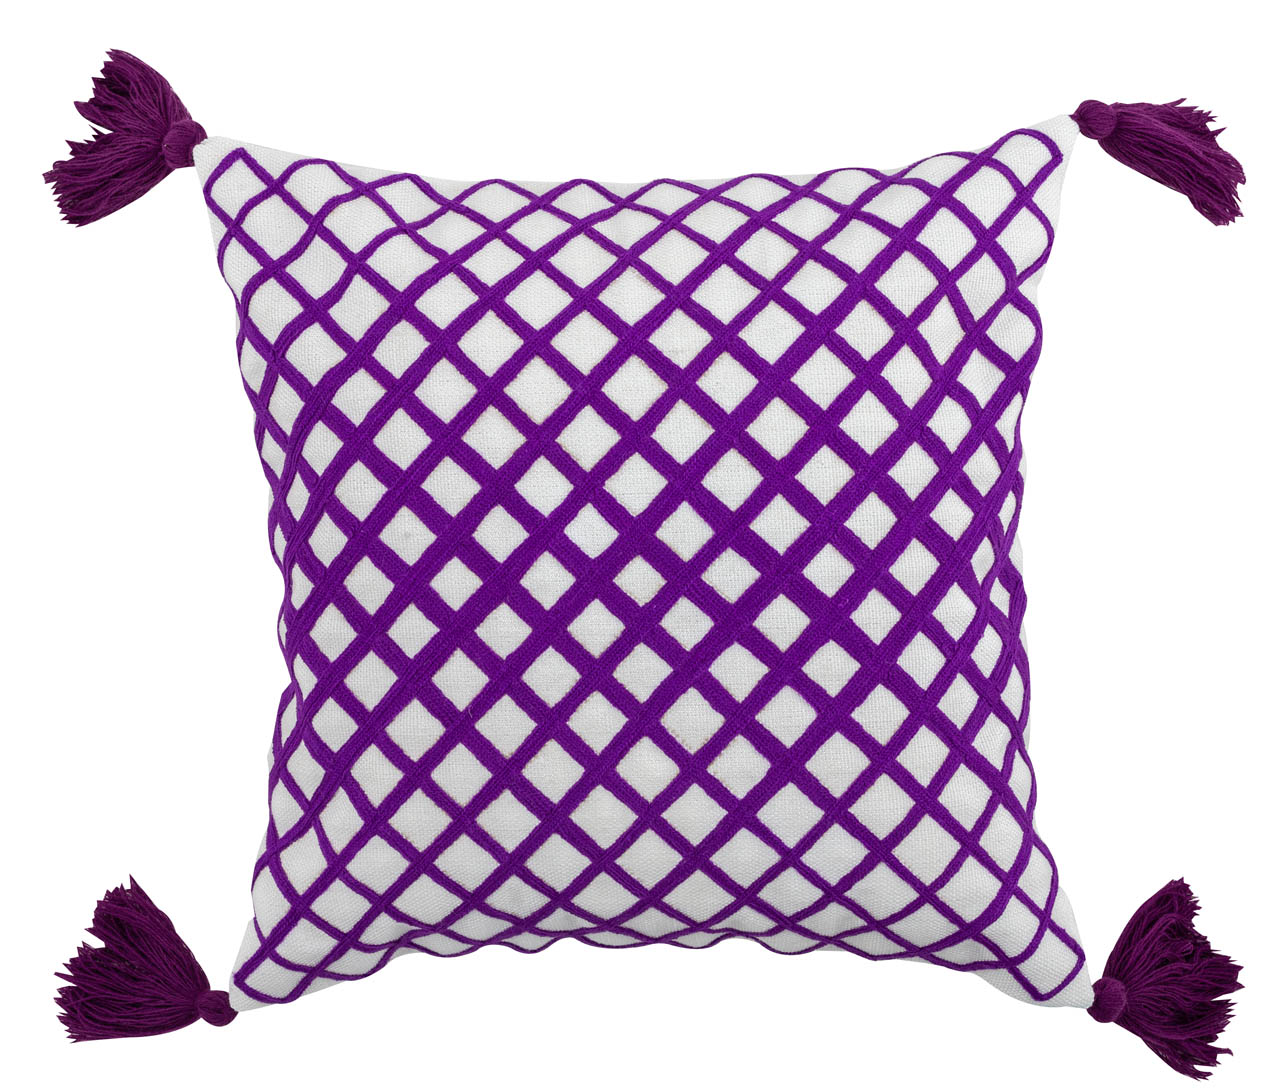 Purple Pillow Cover with Tassels